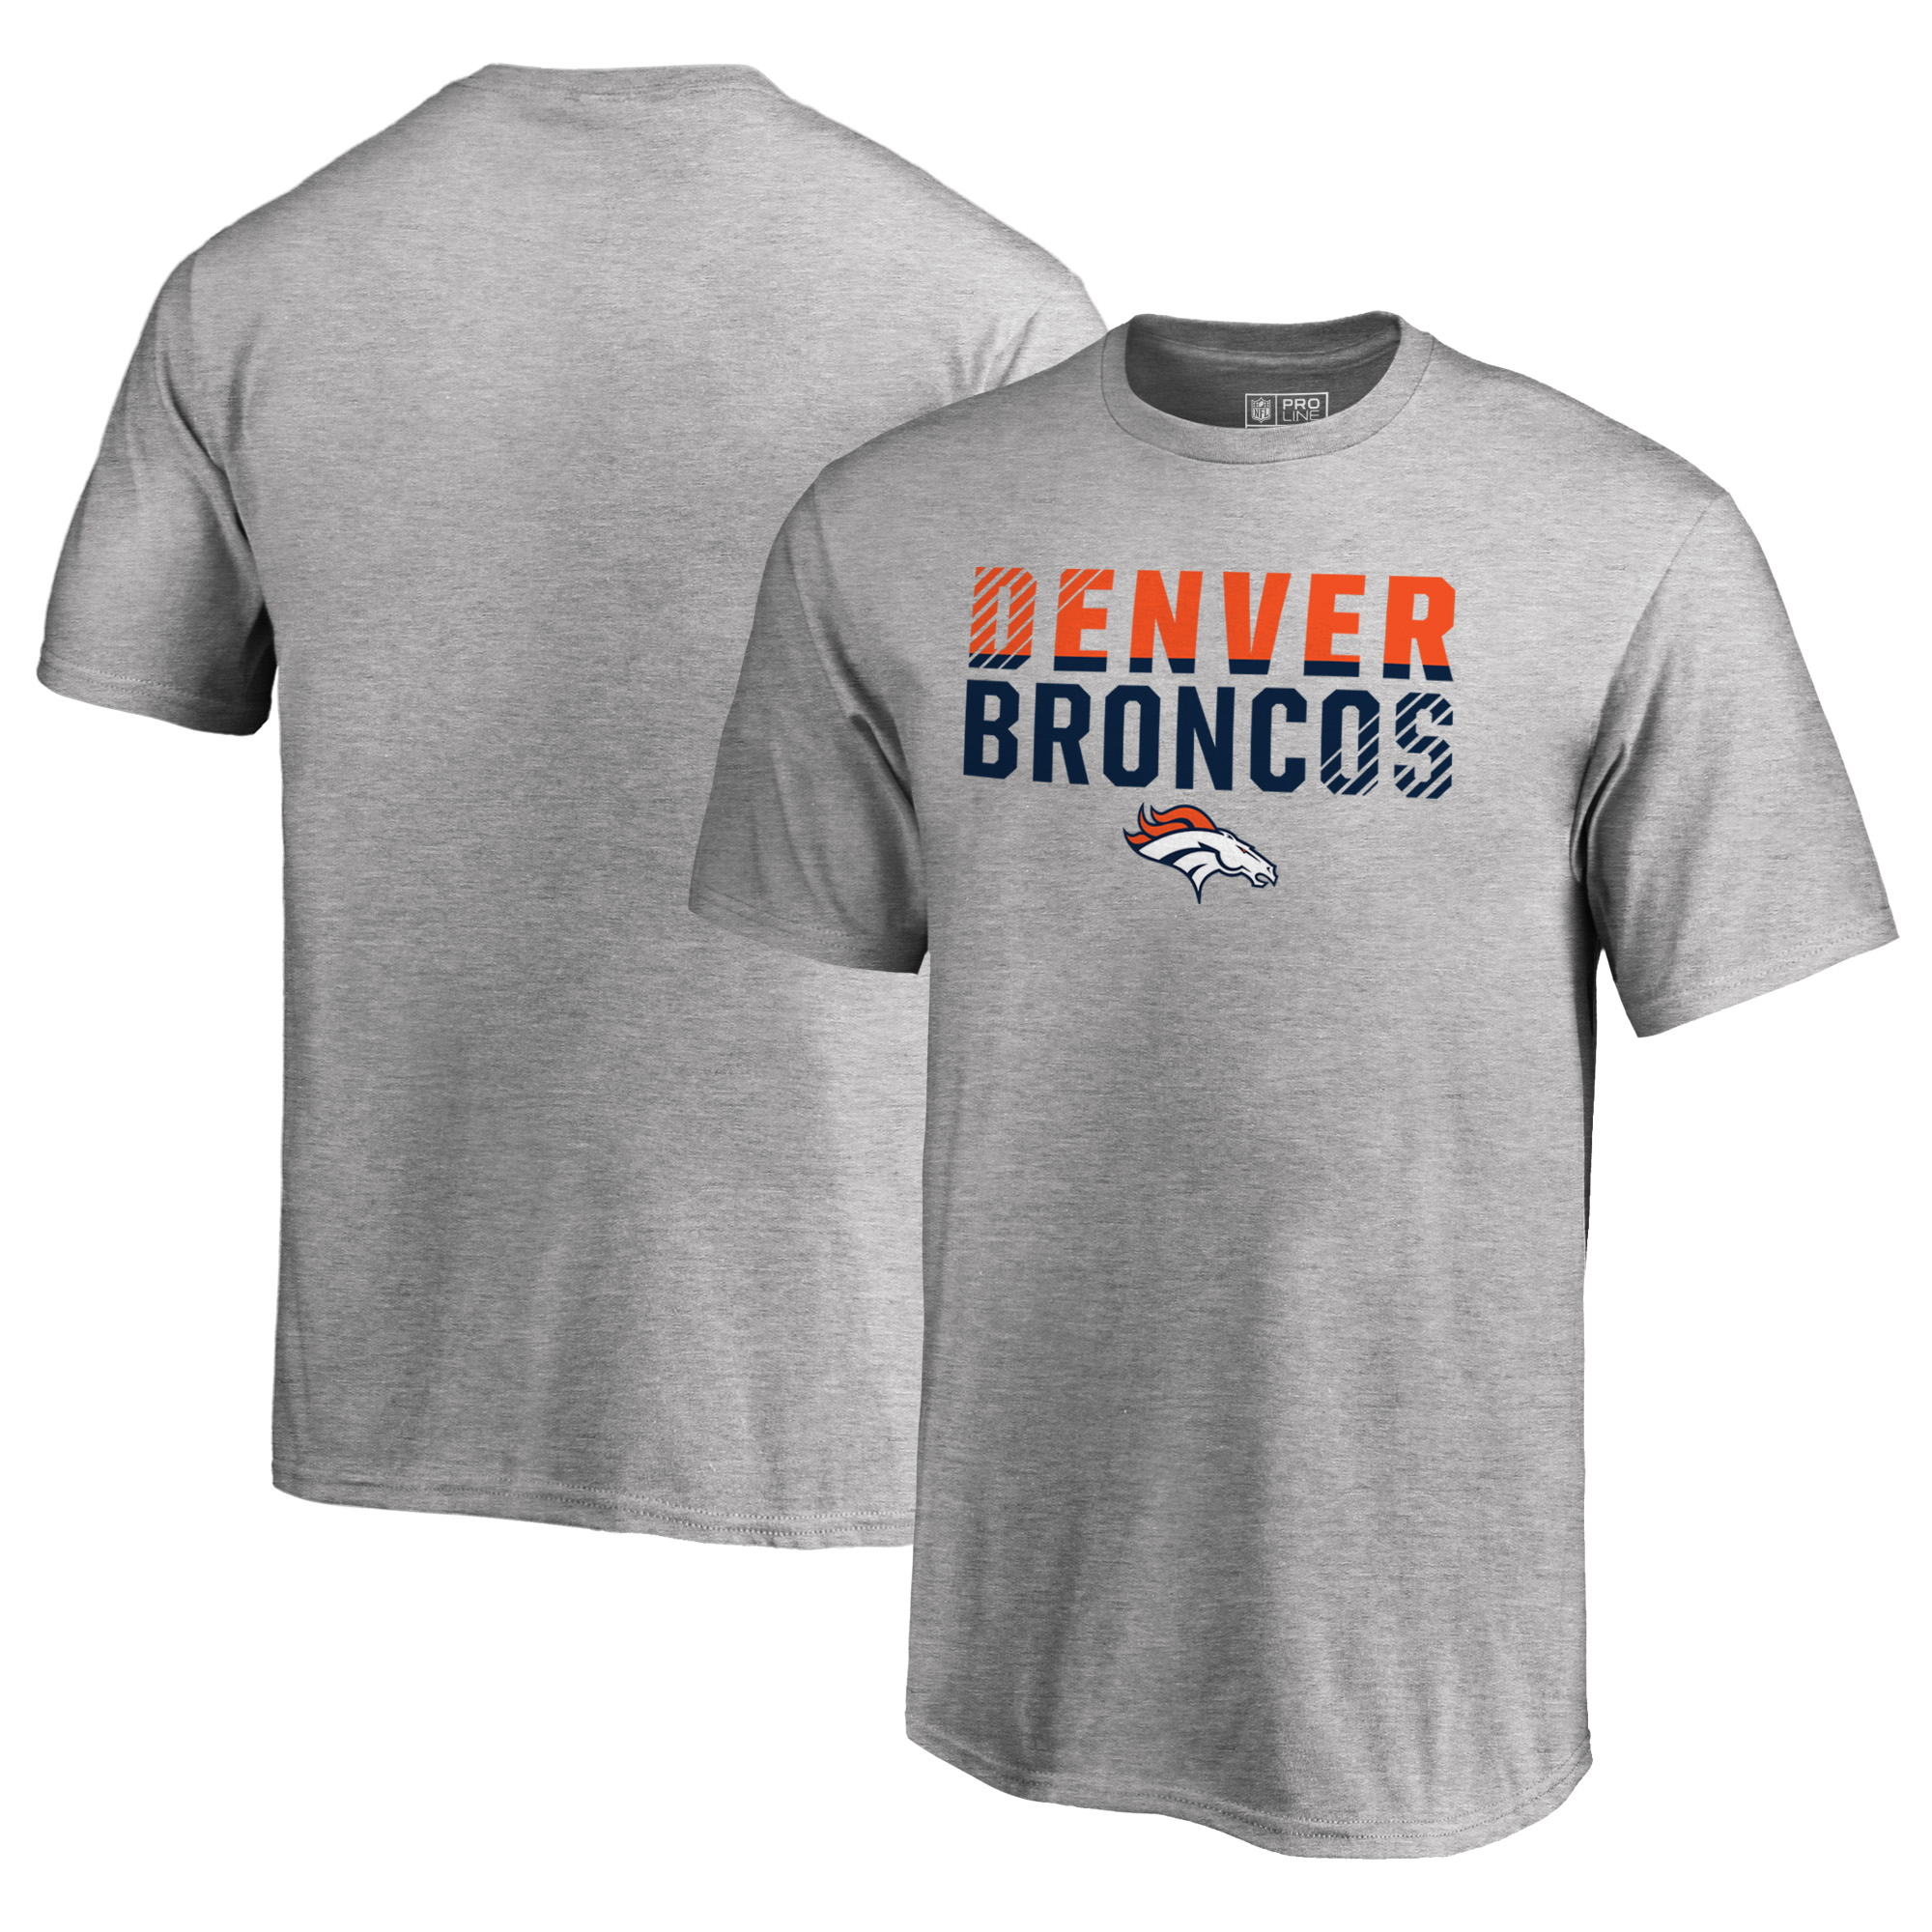 Denver Broncos NFL Pro Line by Fanatics Branded Youth Iconic Collection Fade Out T-Shirt - Ash